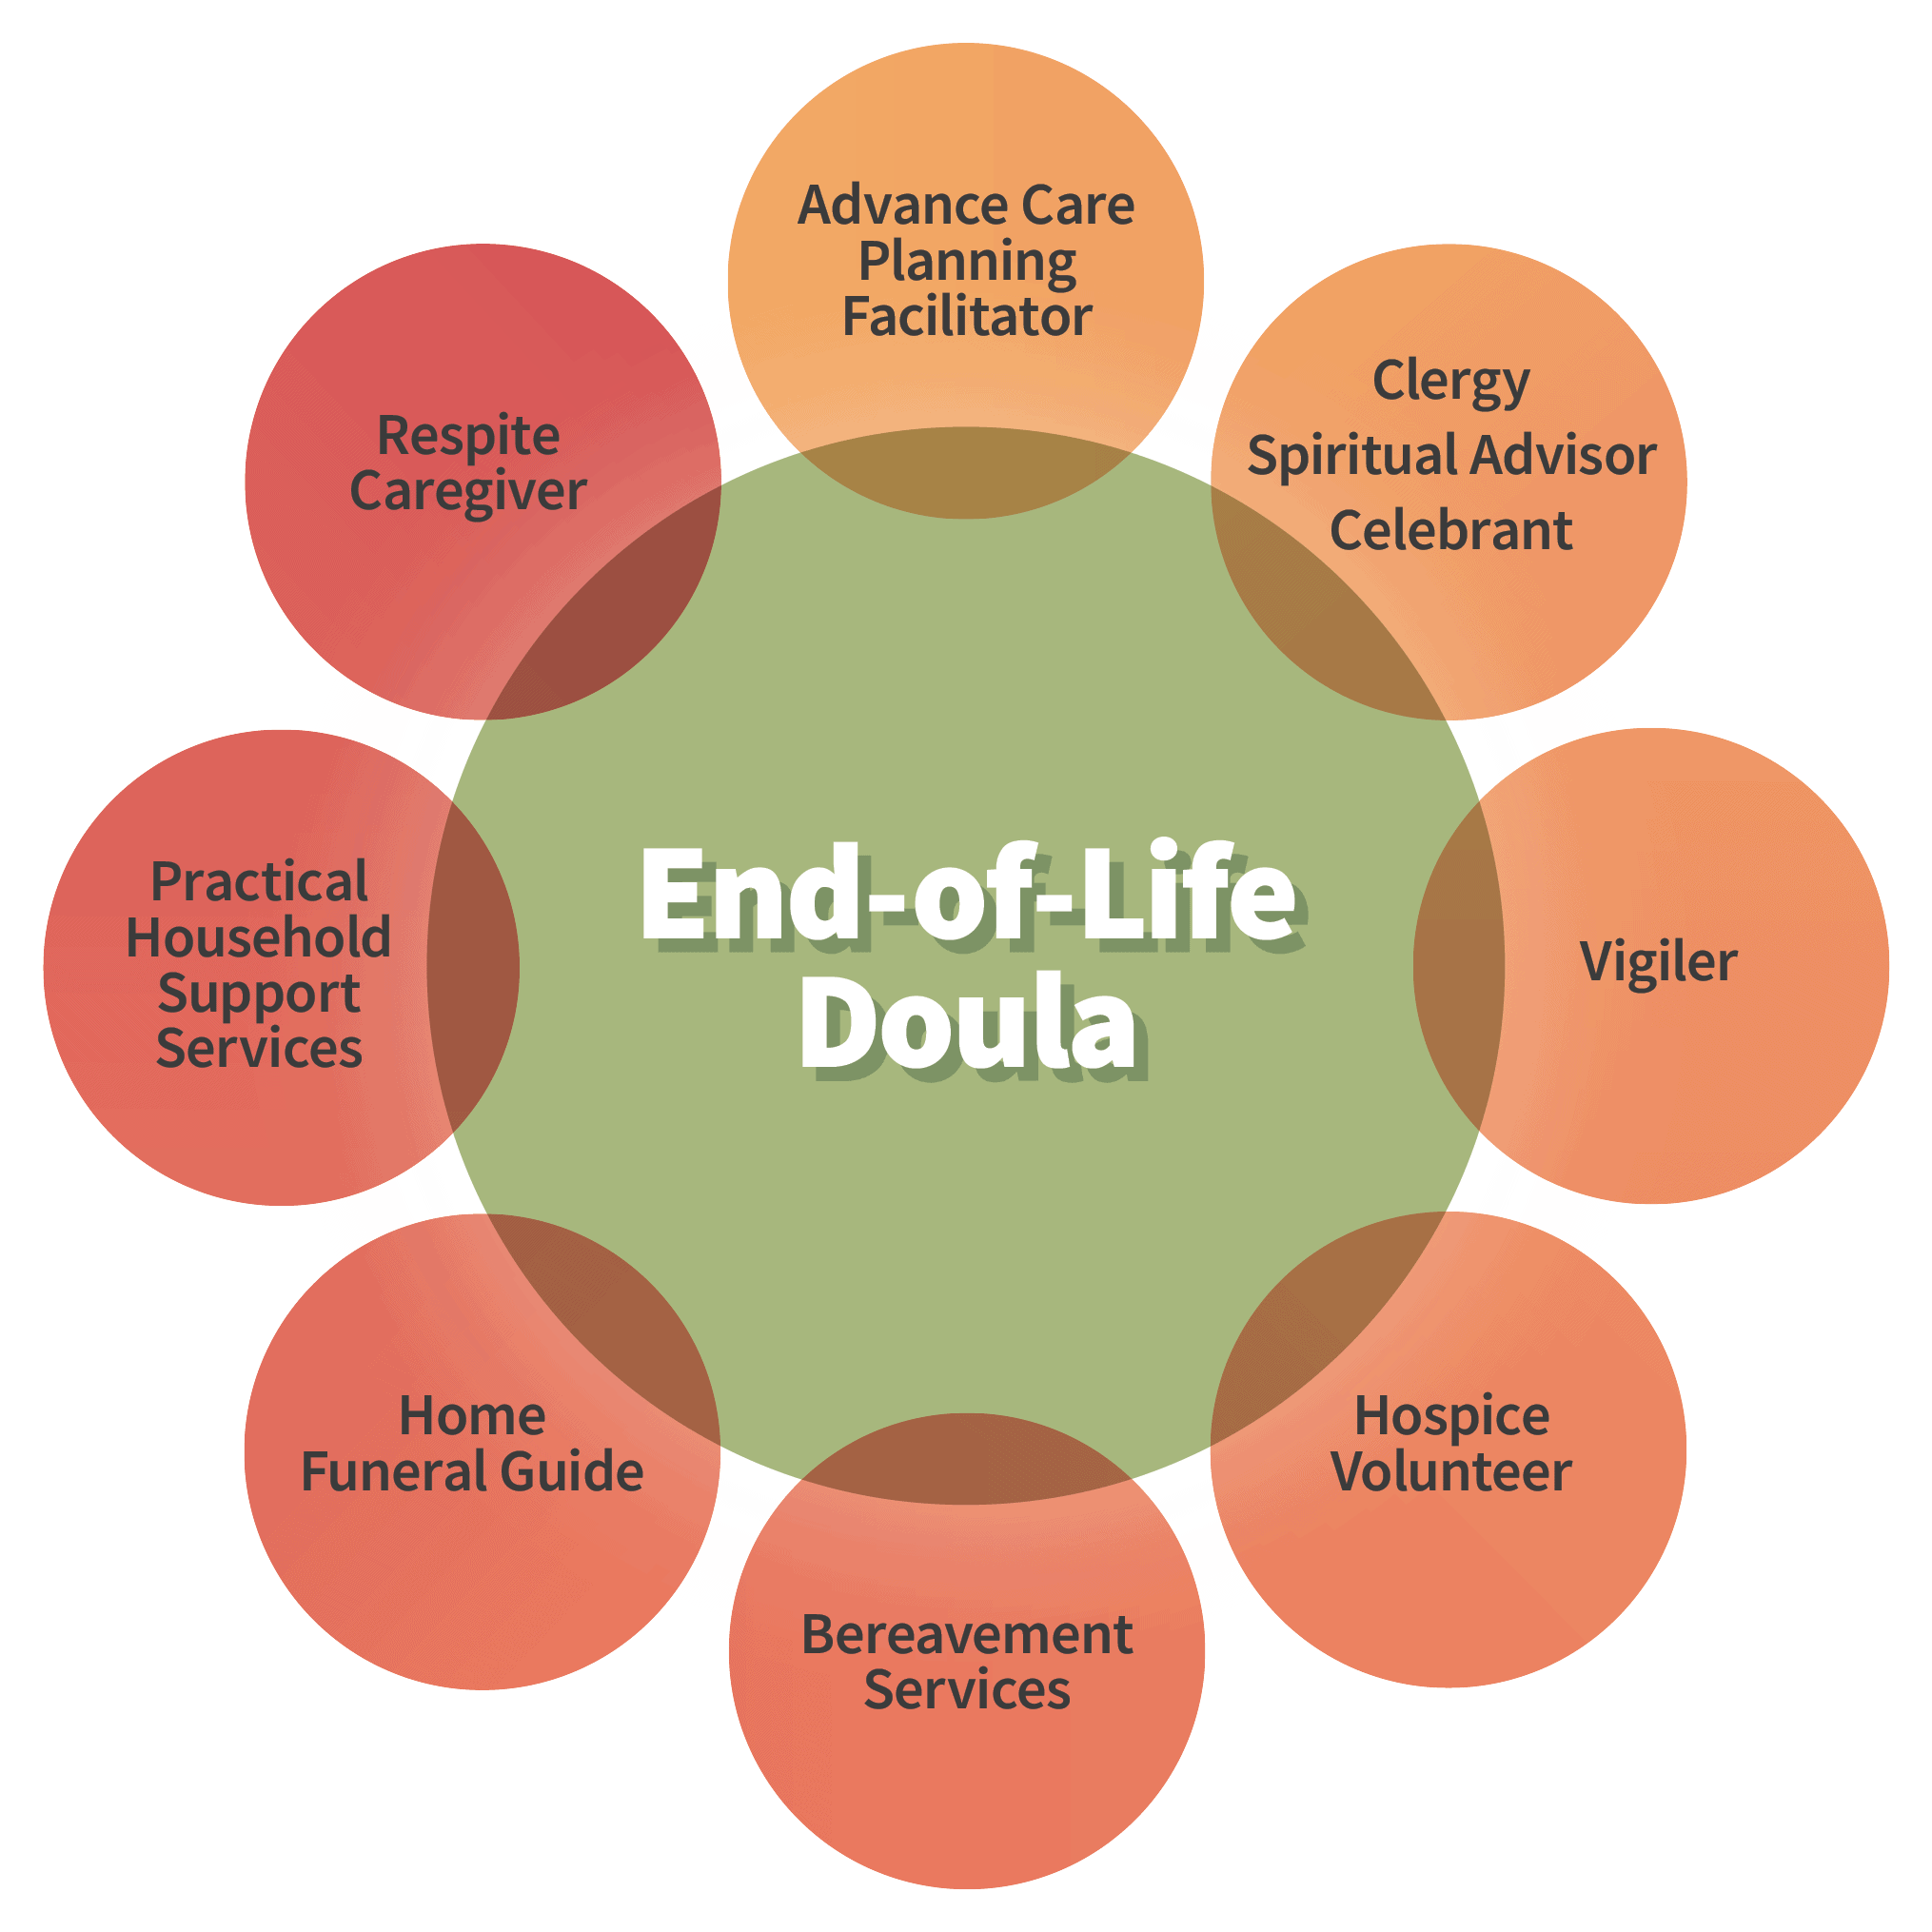 end-of-life doula